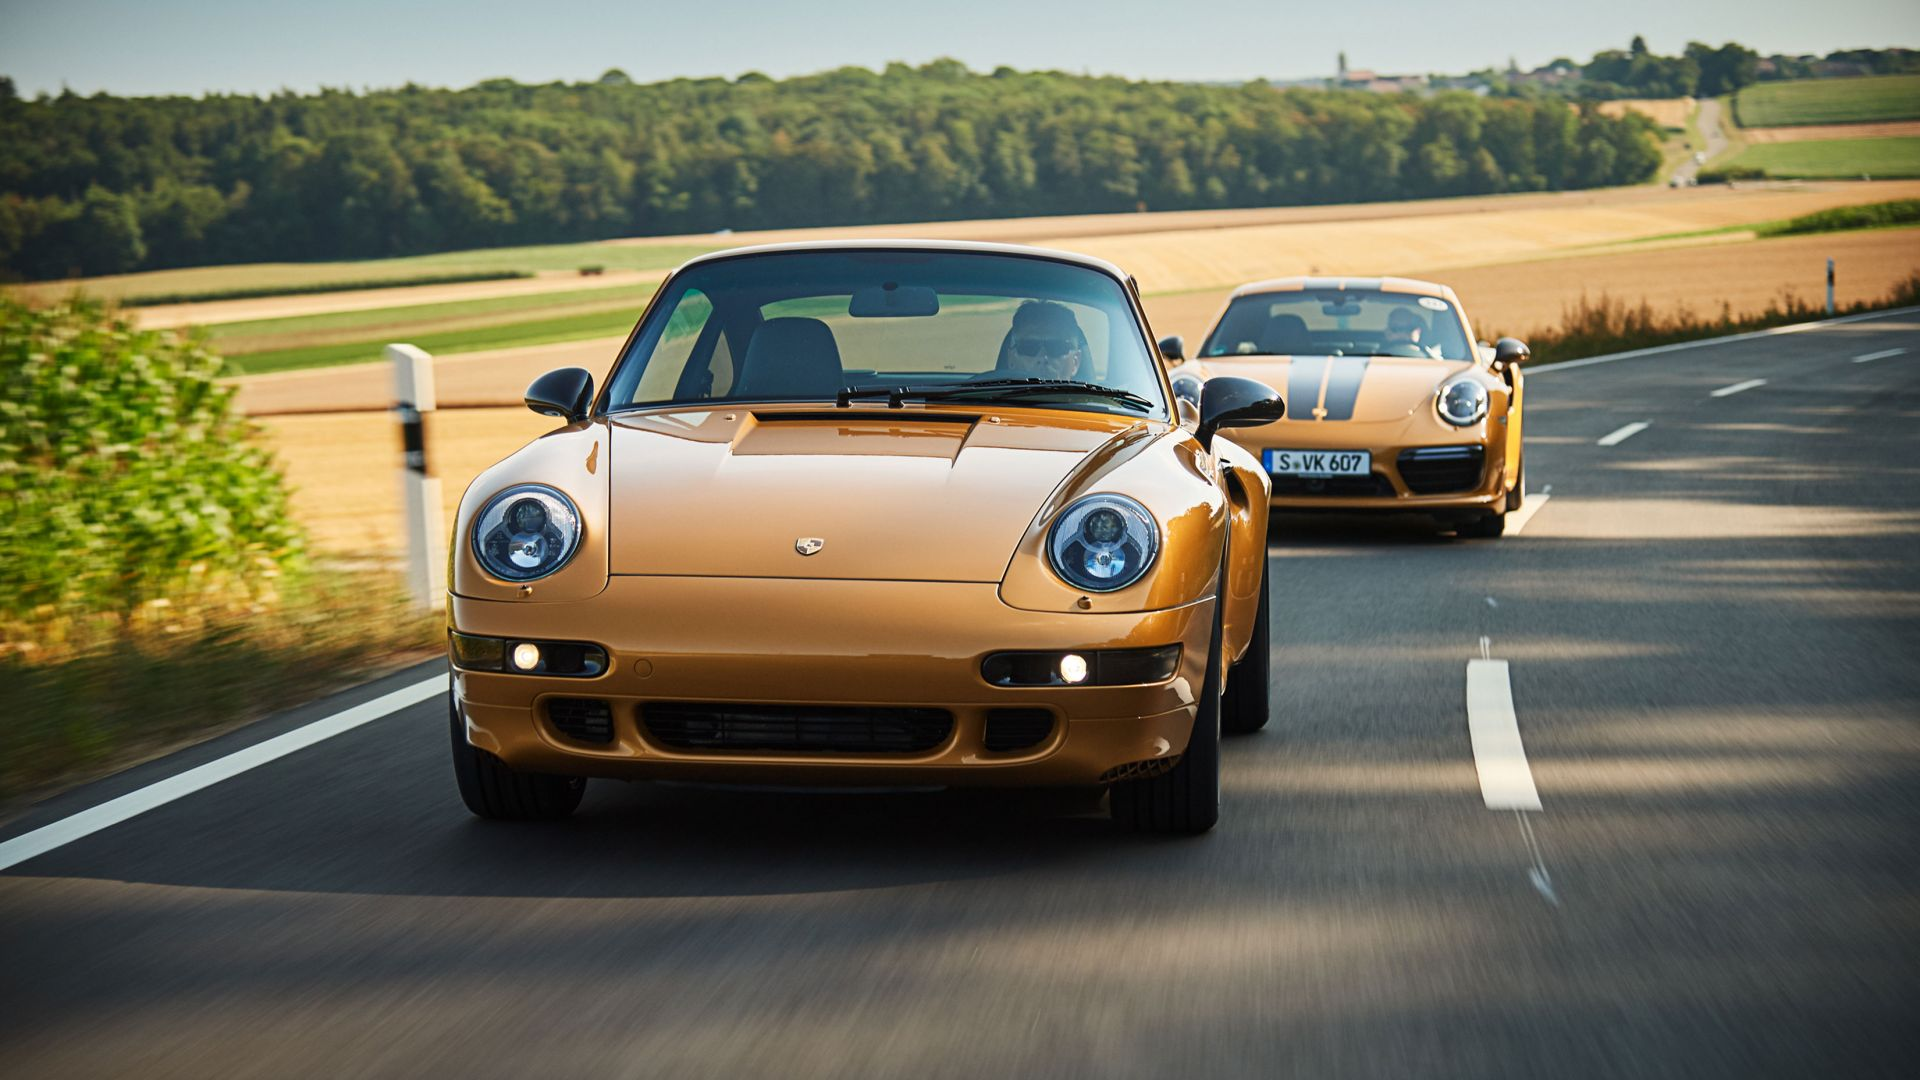 Porsche 993 Turbo S Project Gold, 2018 Cars, limited edition, 4K (horizontal)